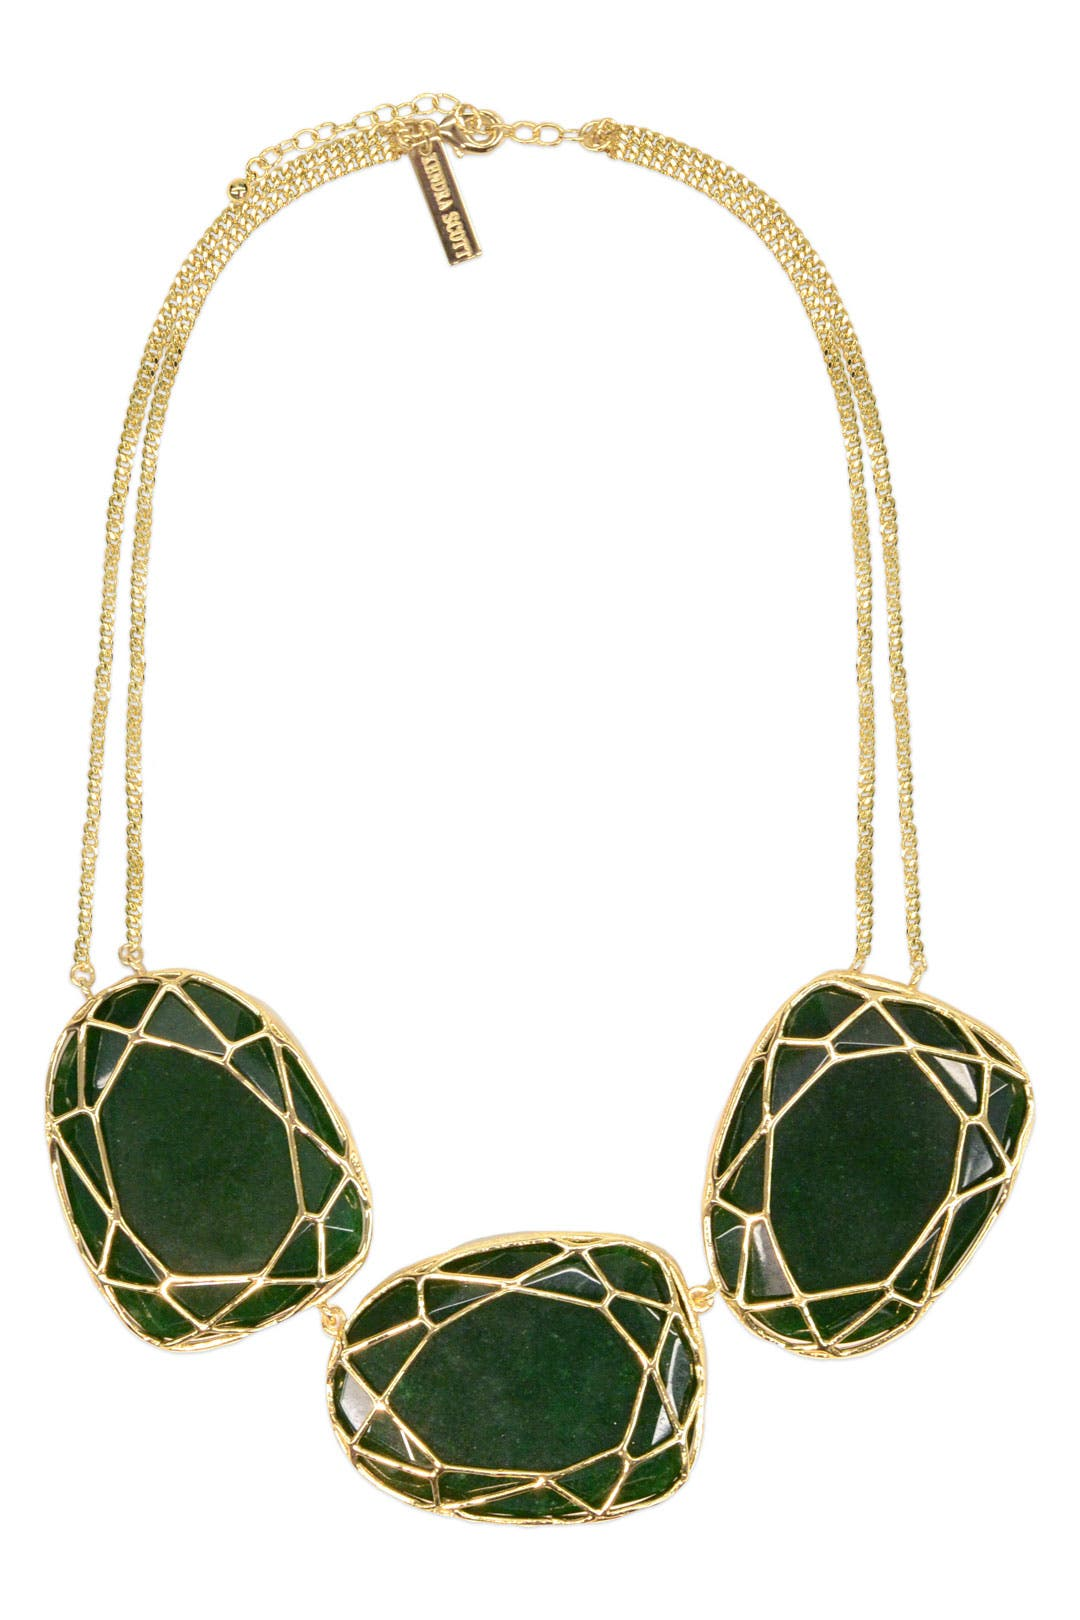 Forest Jade Marcella Necklace by Kendra Scott